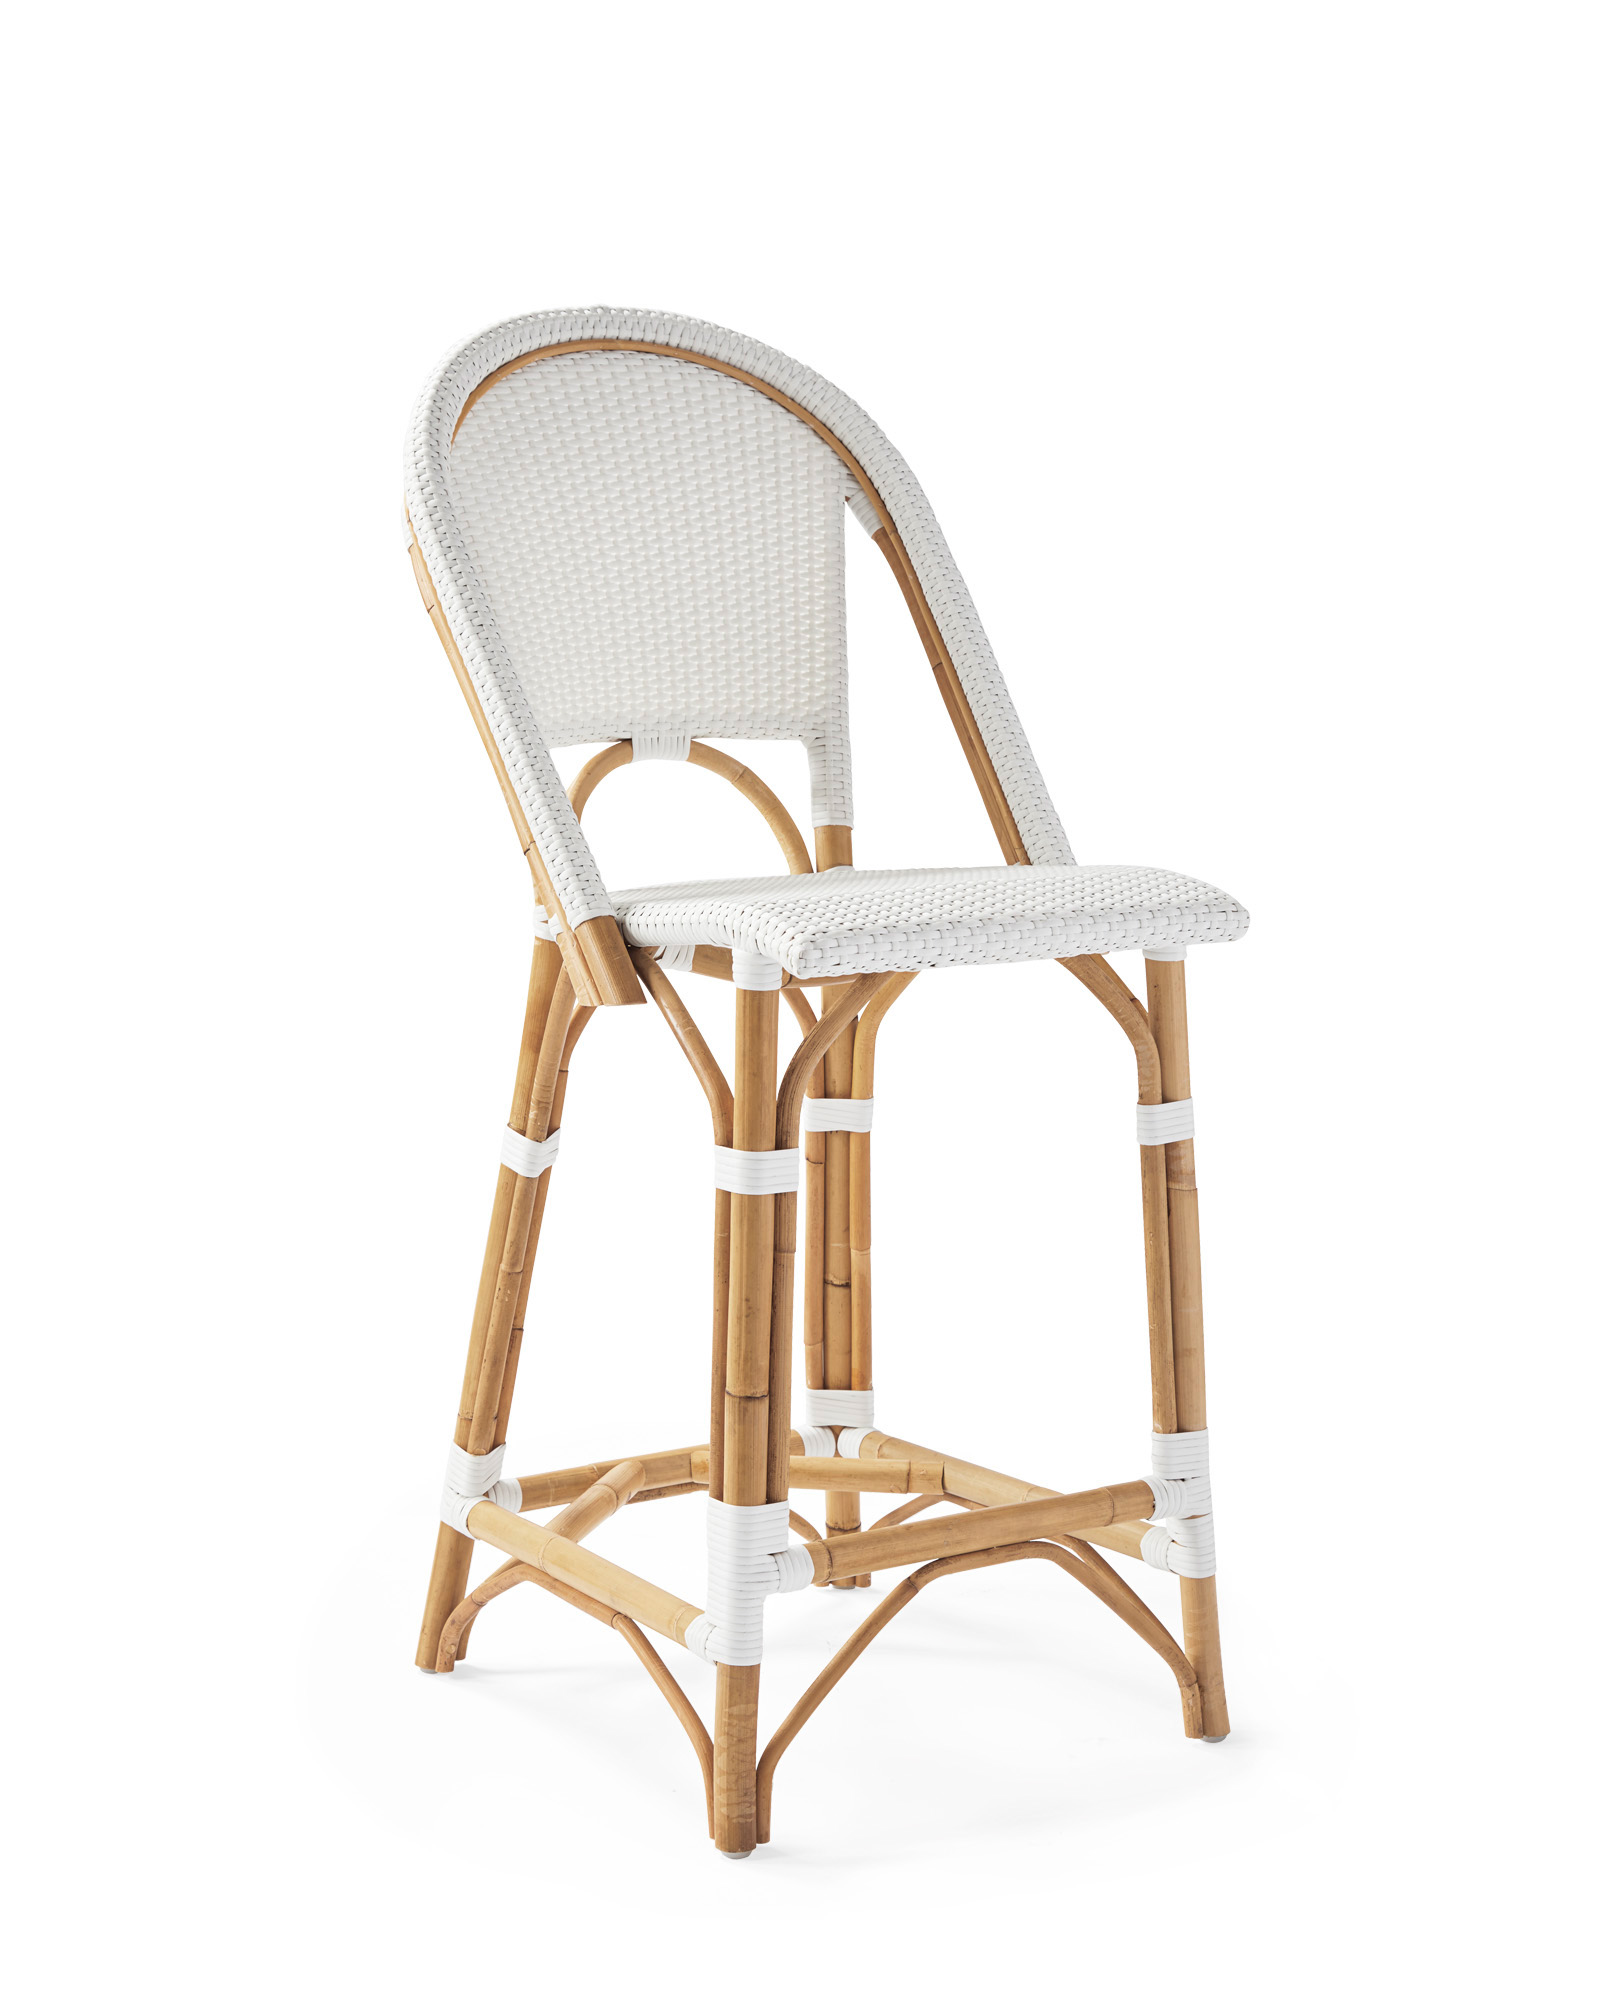 Furn_Riviera_Counter_Stool_White_Angle_MV_0267_Crop_SH.jpg